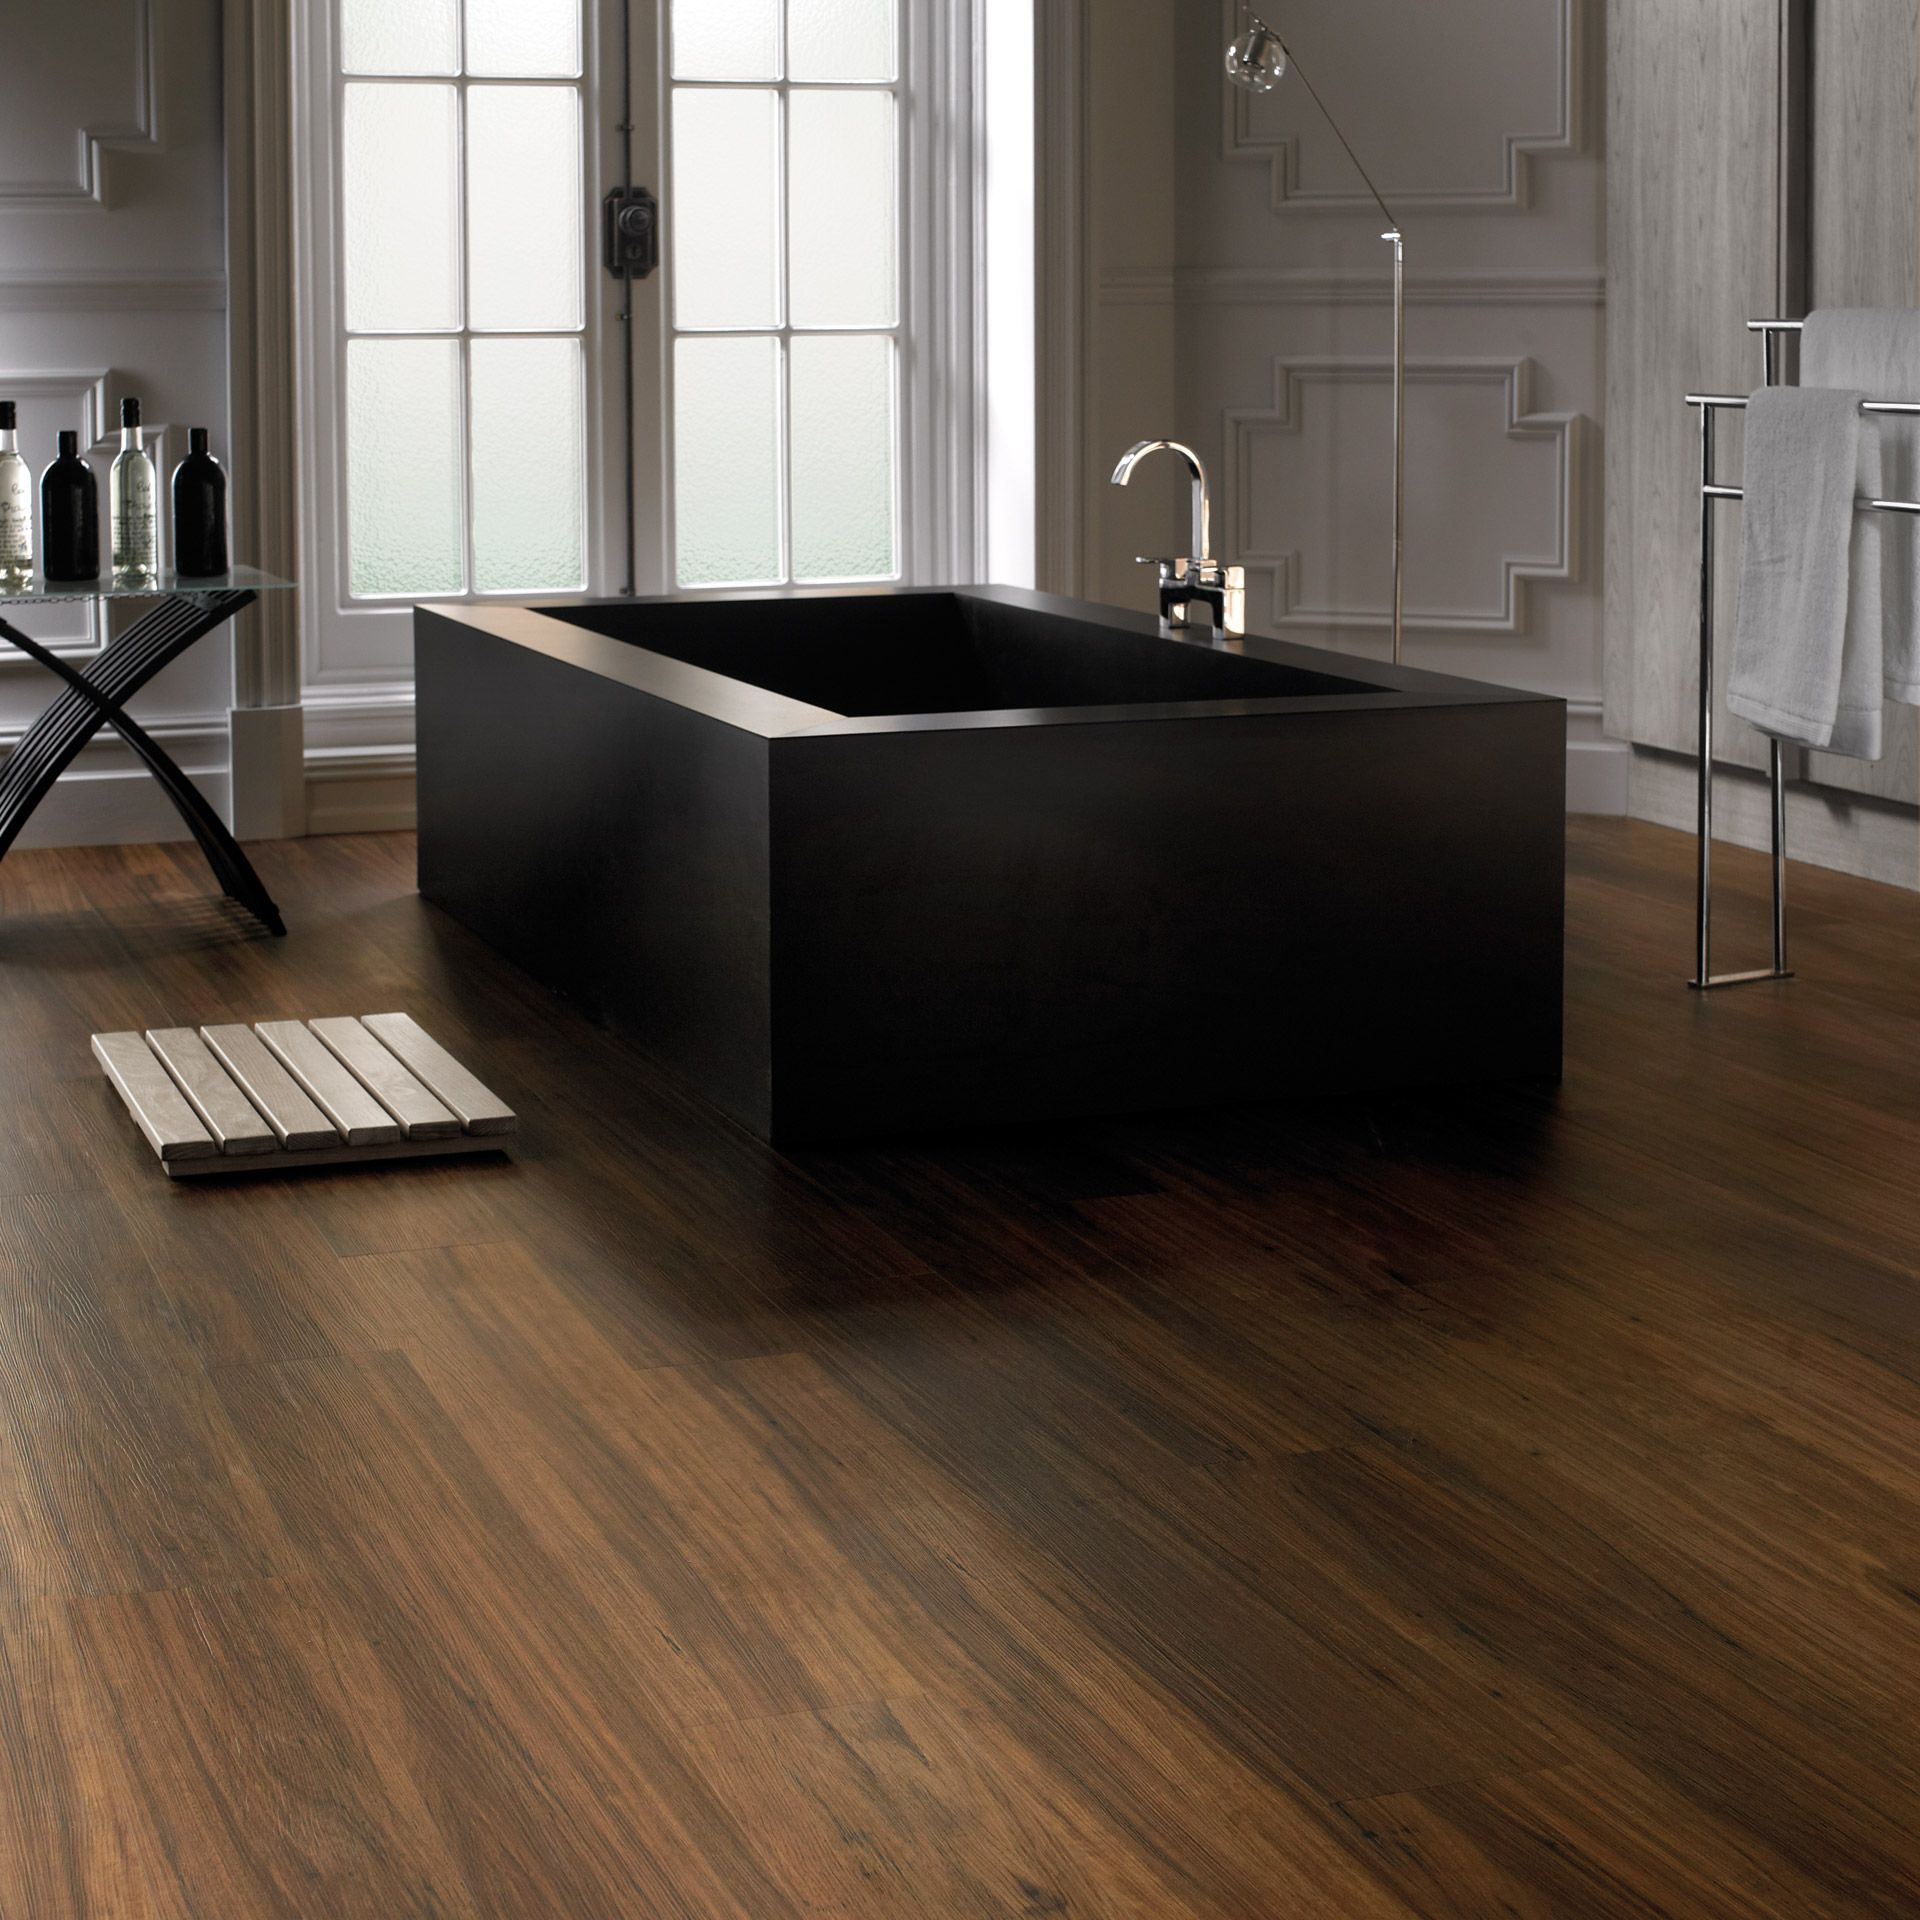 Luxury Vinyl Wood Effect Planks Vinyl flooring, Wood